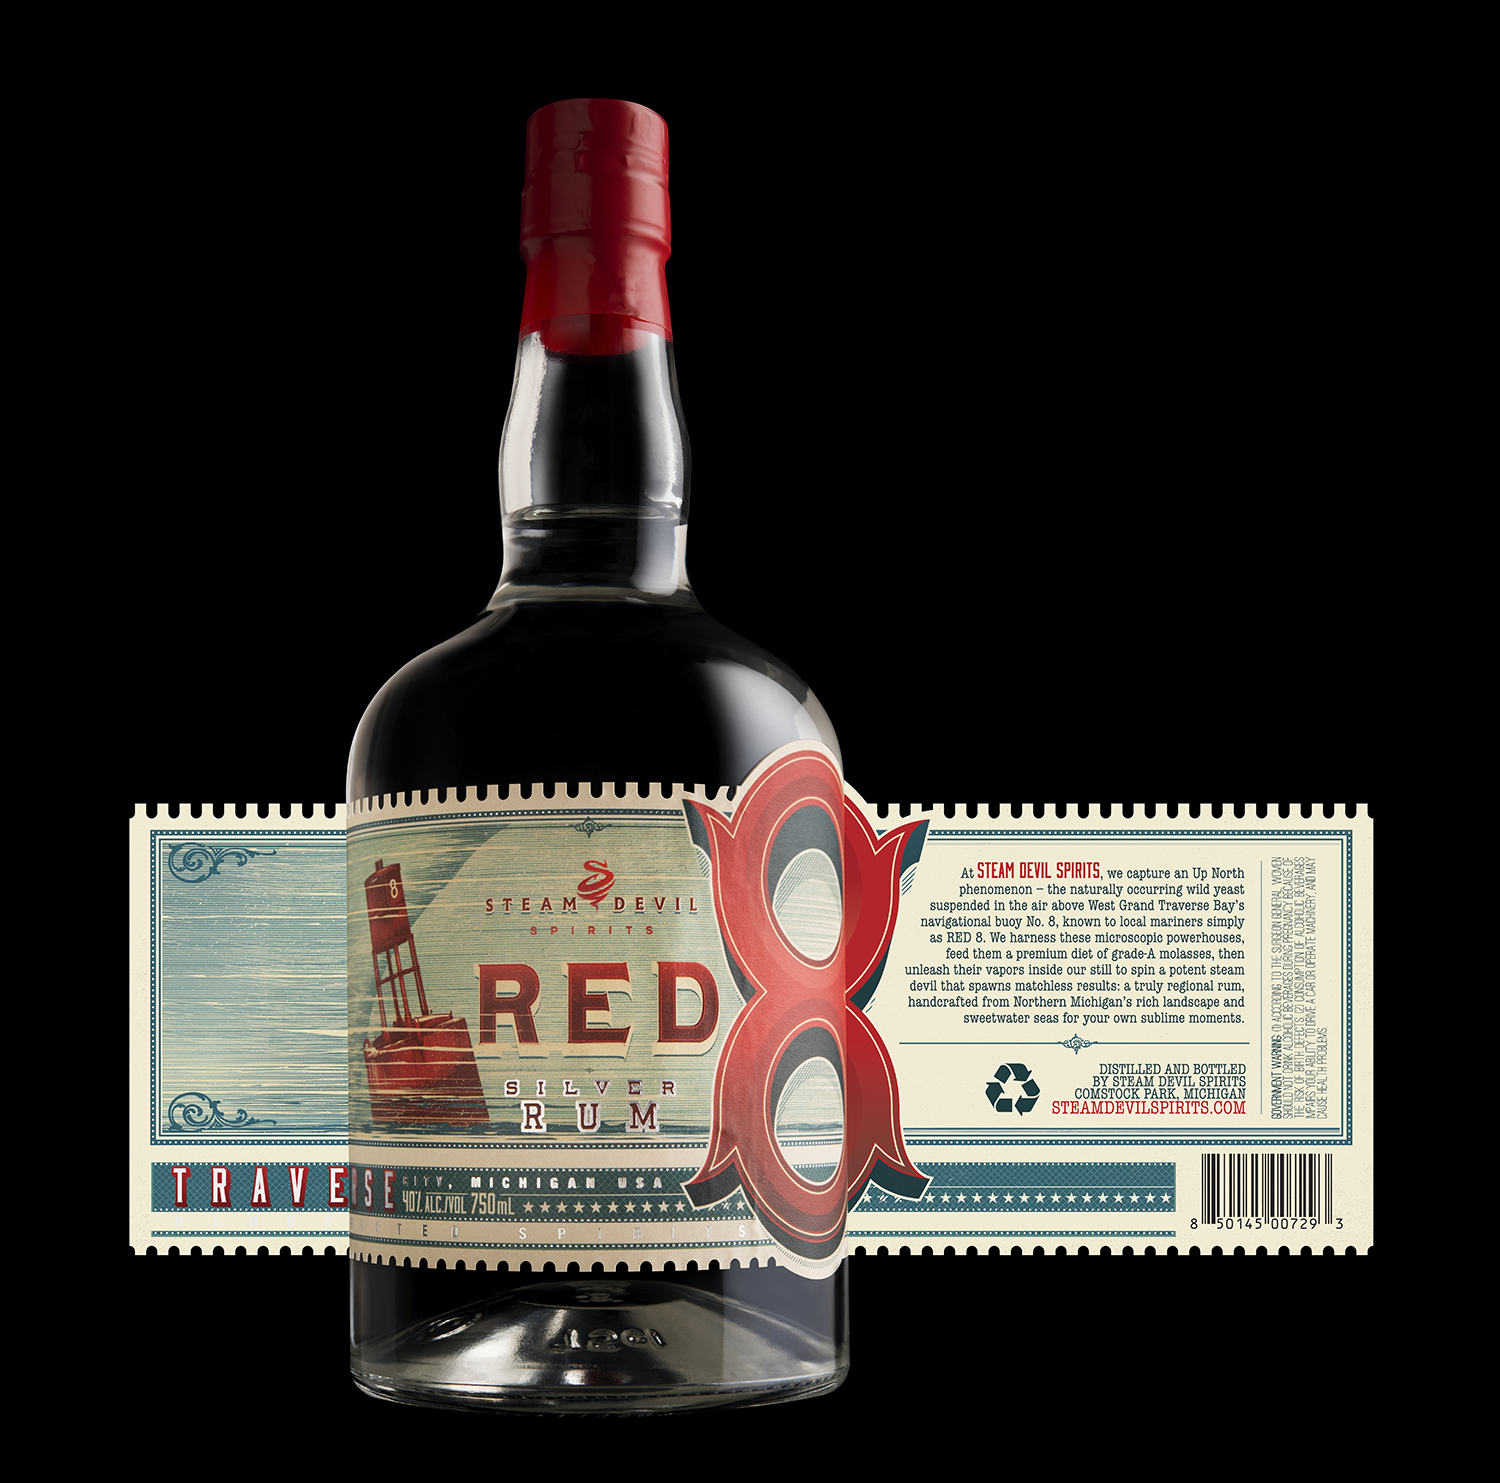 Packaging Design for Steam Devil Spirits' Red 8 Rum